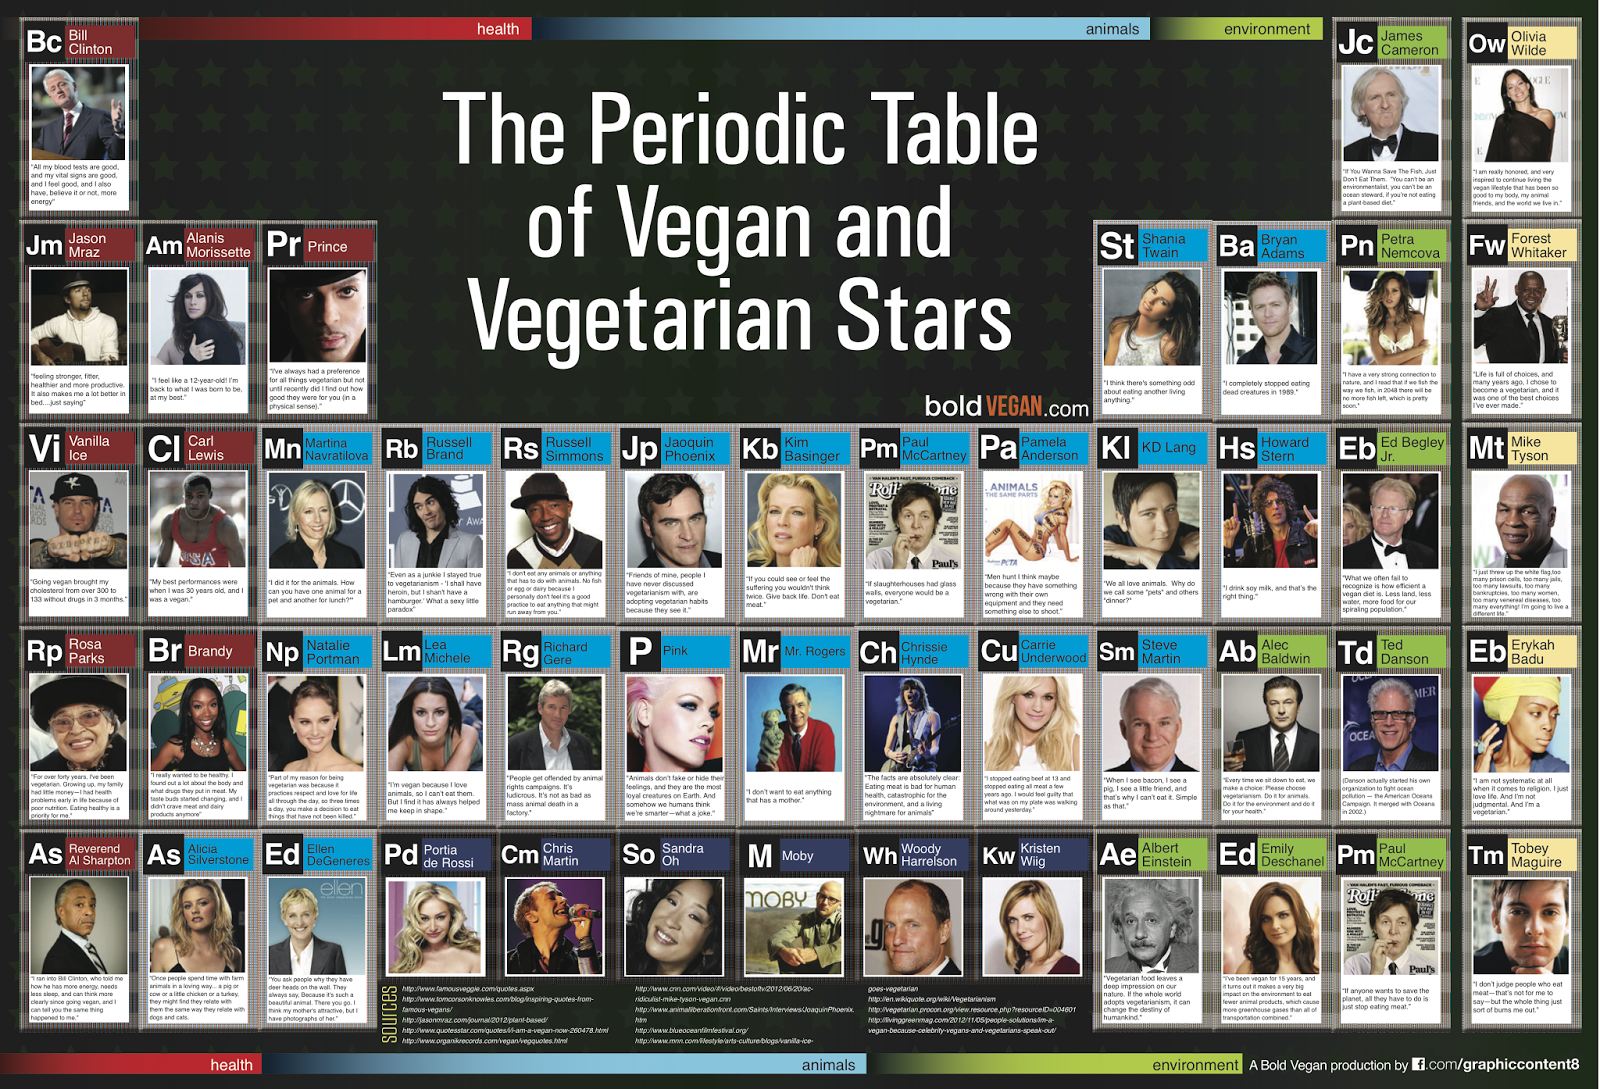 the-periodic-table-of-vegan-and-vegetarian-stars_50ad3cb8f07cb.png